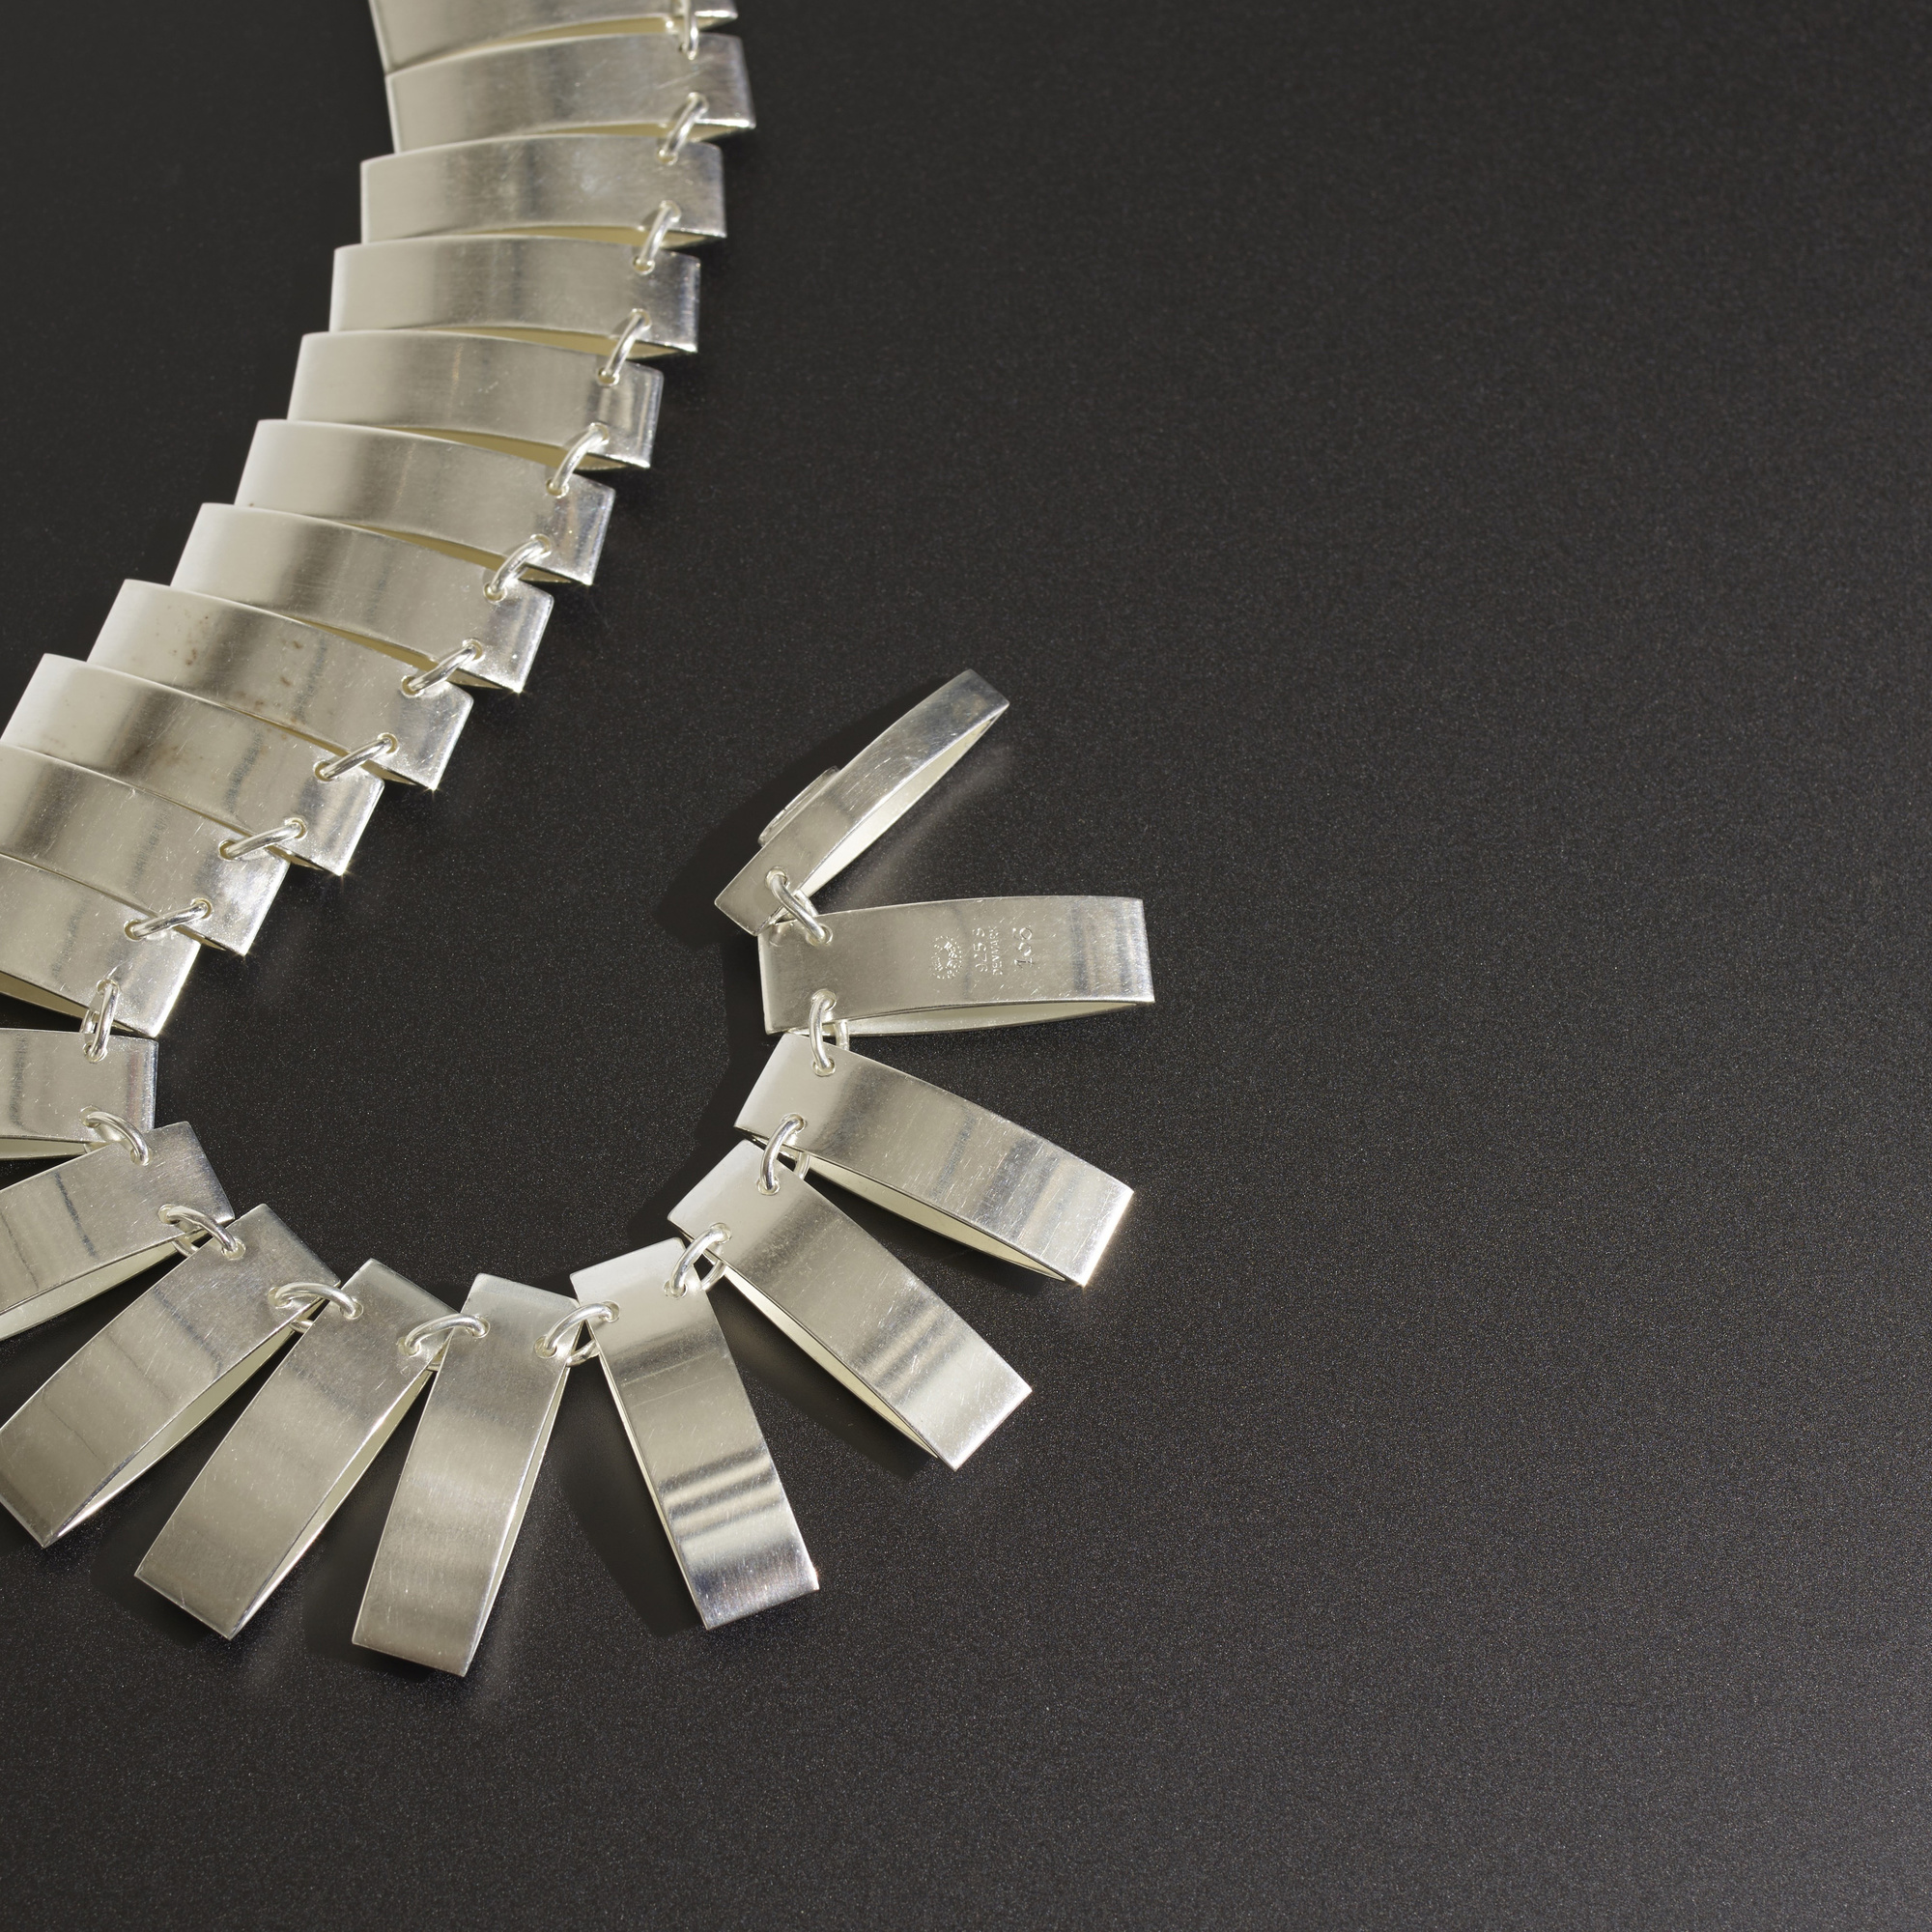 176: Arno Malinowski / necklace, model 136 (3 of 3)